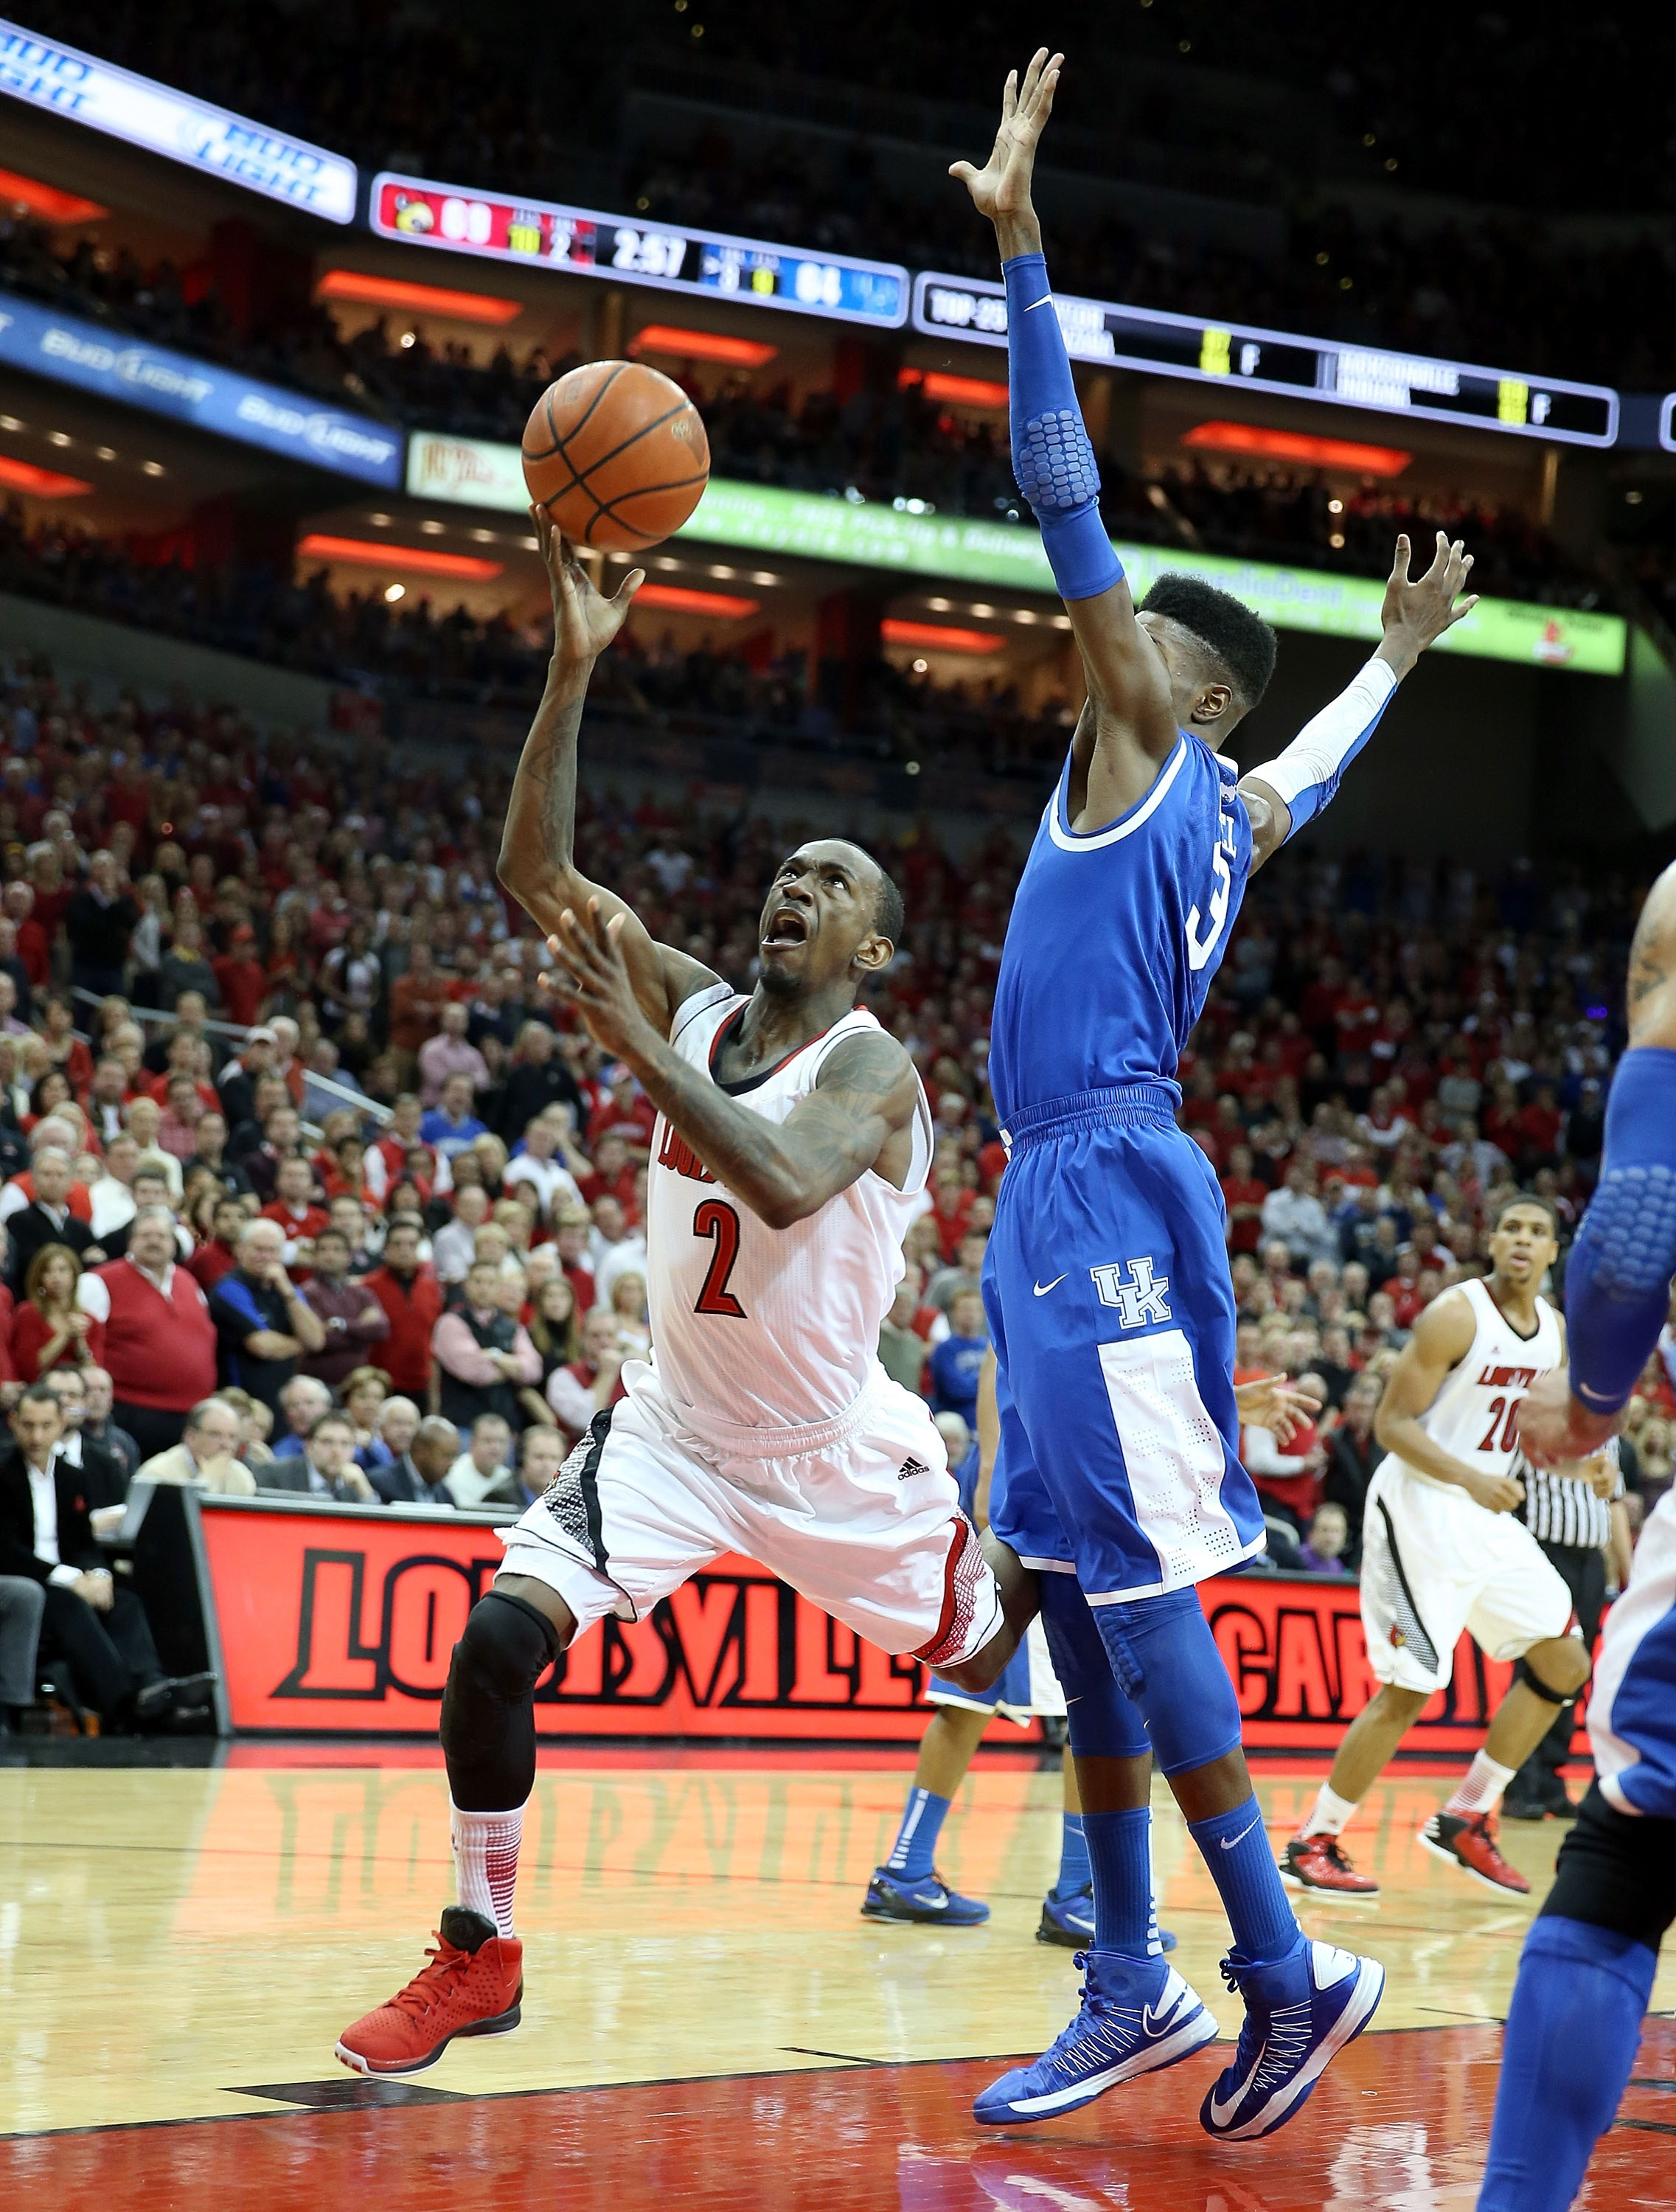 Russ Smith shoots the ball as he goes to the ground. (Getty)